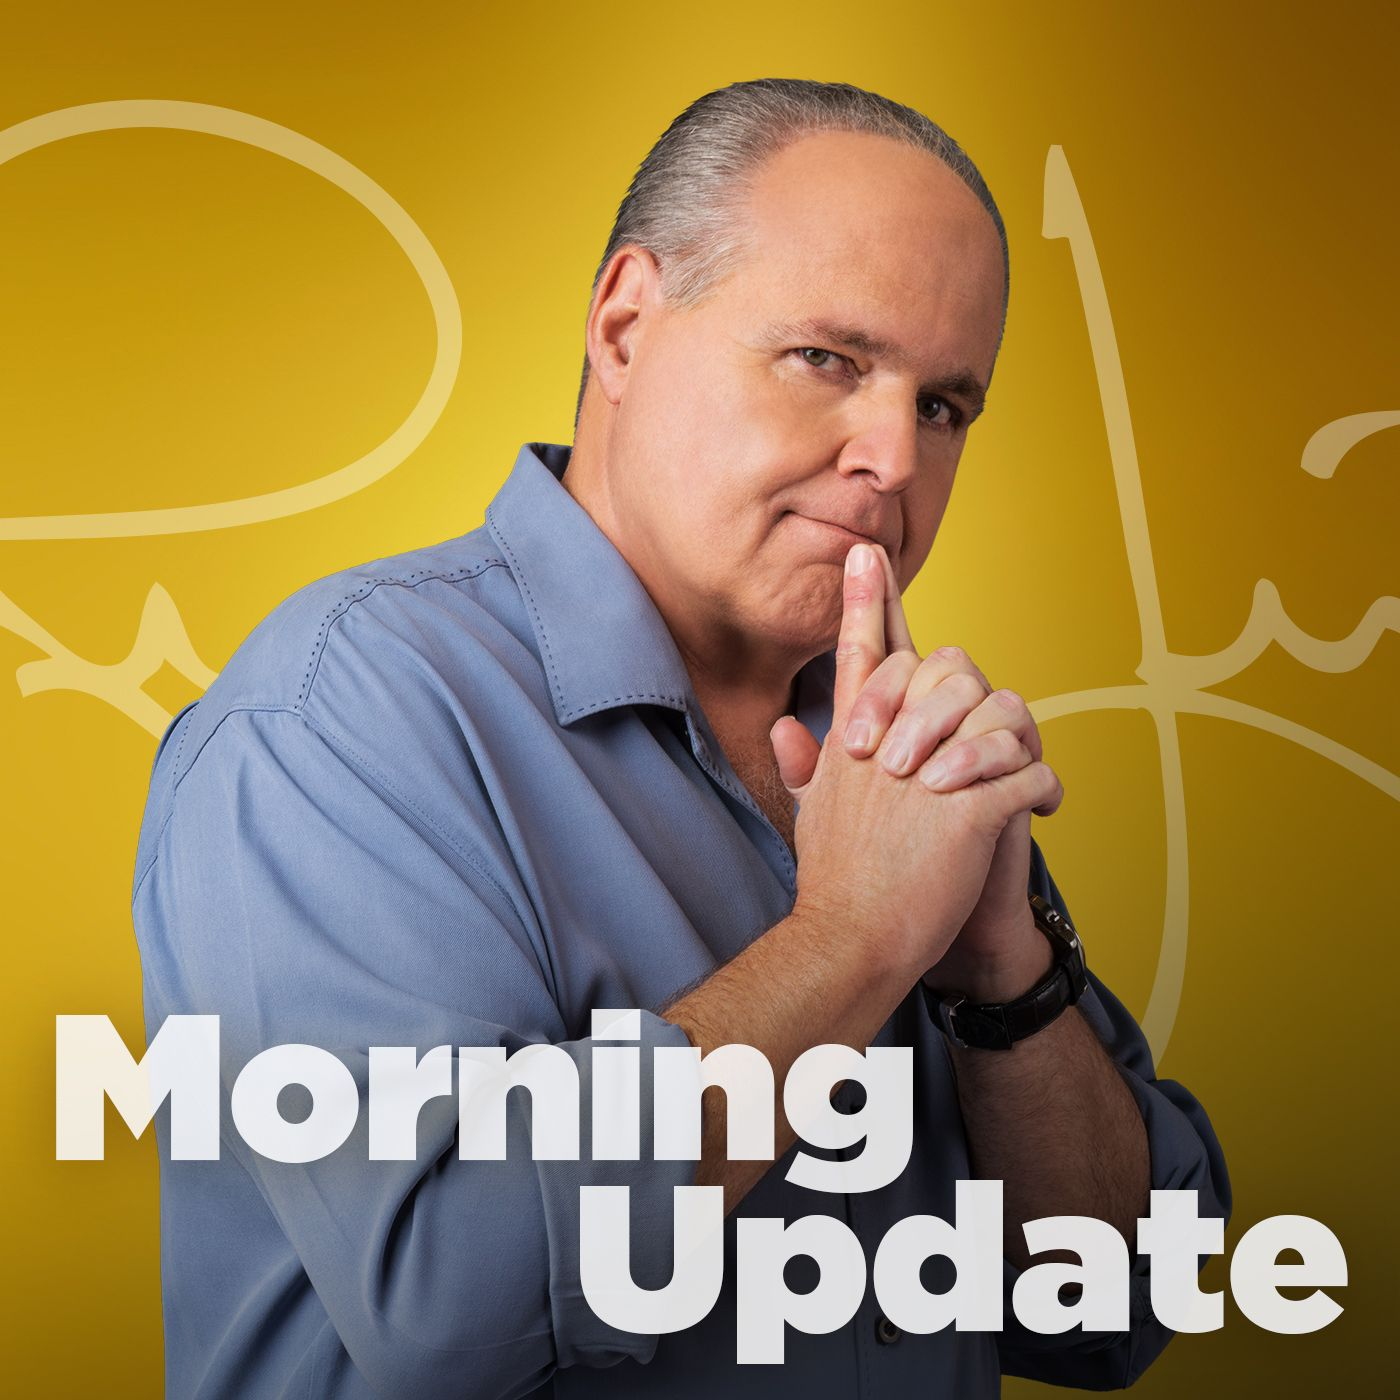 Rush Limbaugh Jun 24, 2020